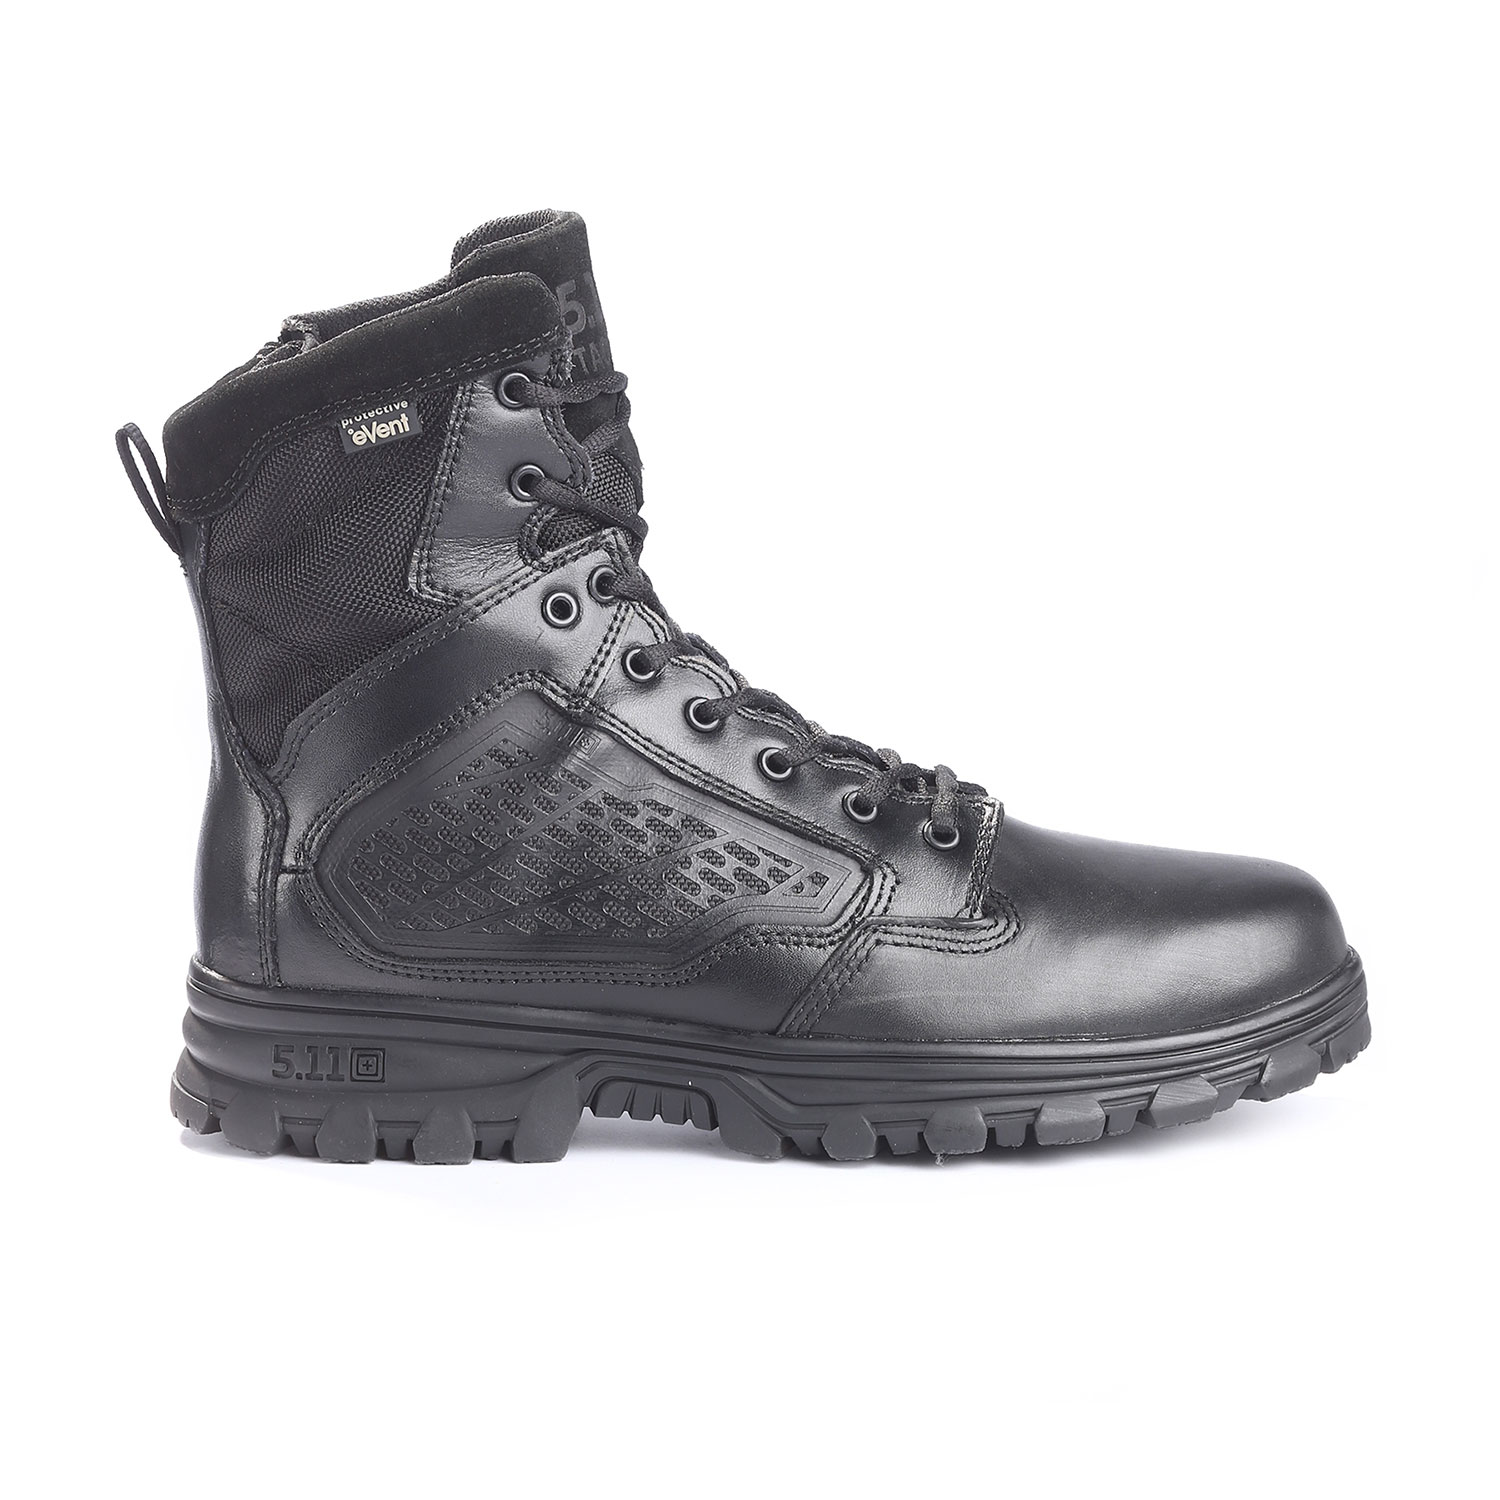 "5.11 Tactical 6"" EVO Waterproof Boot"